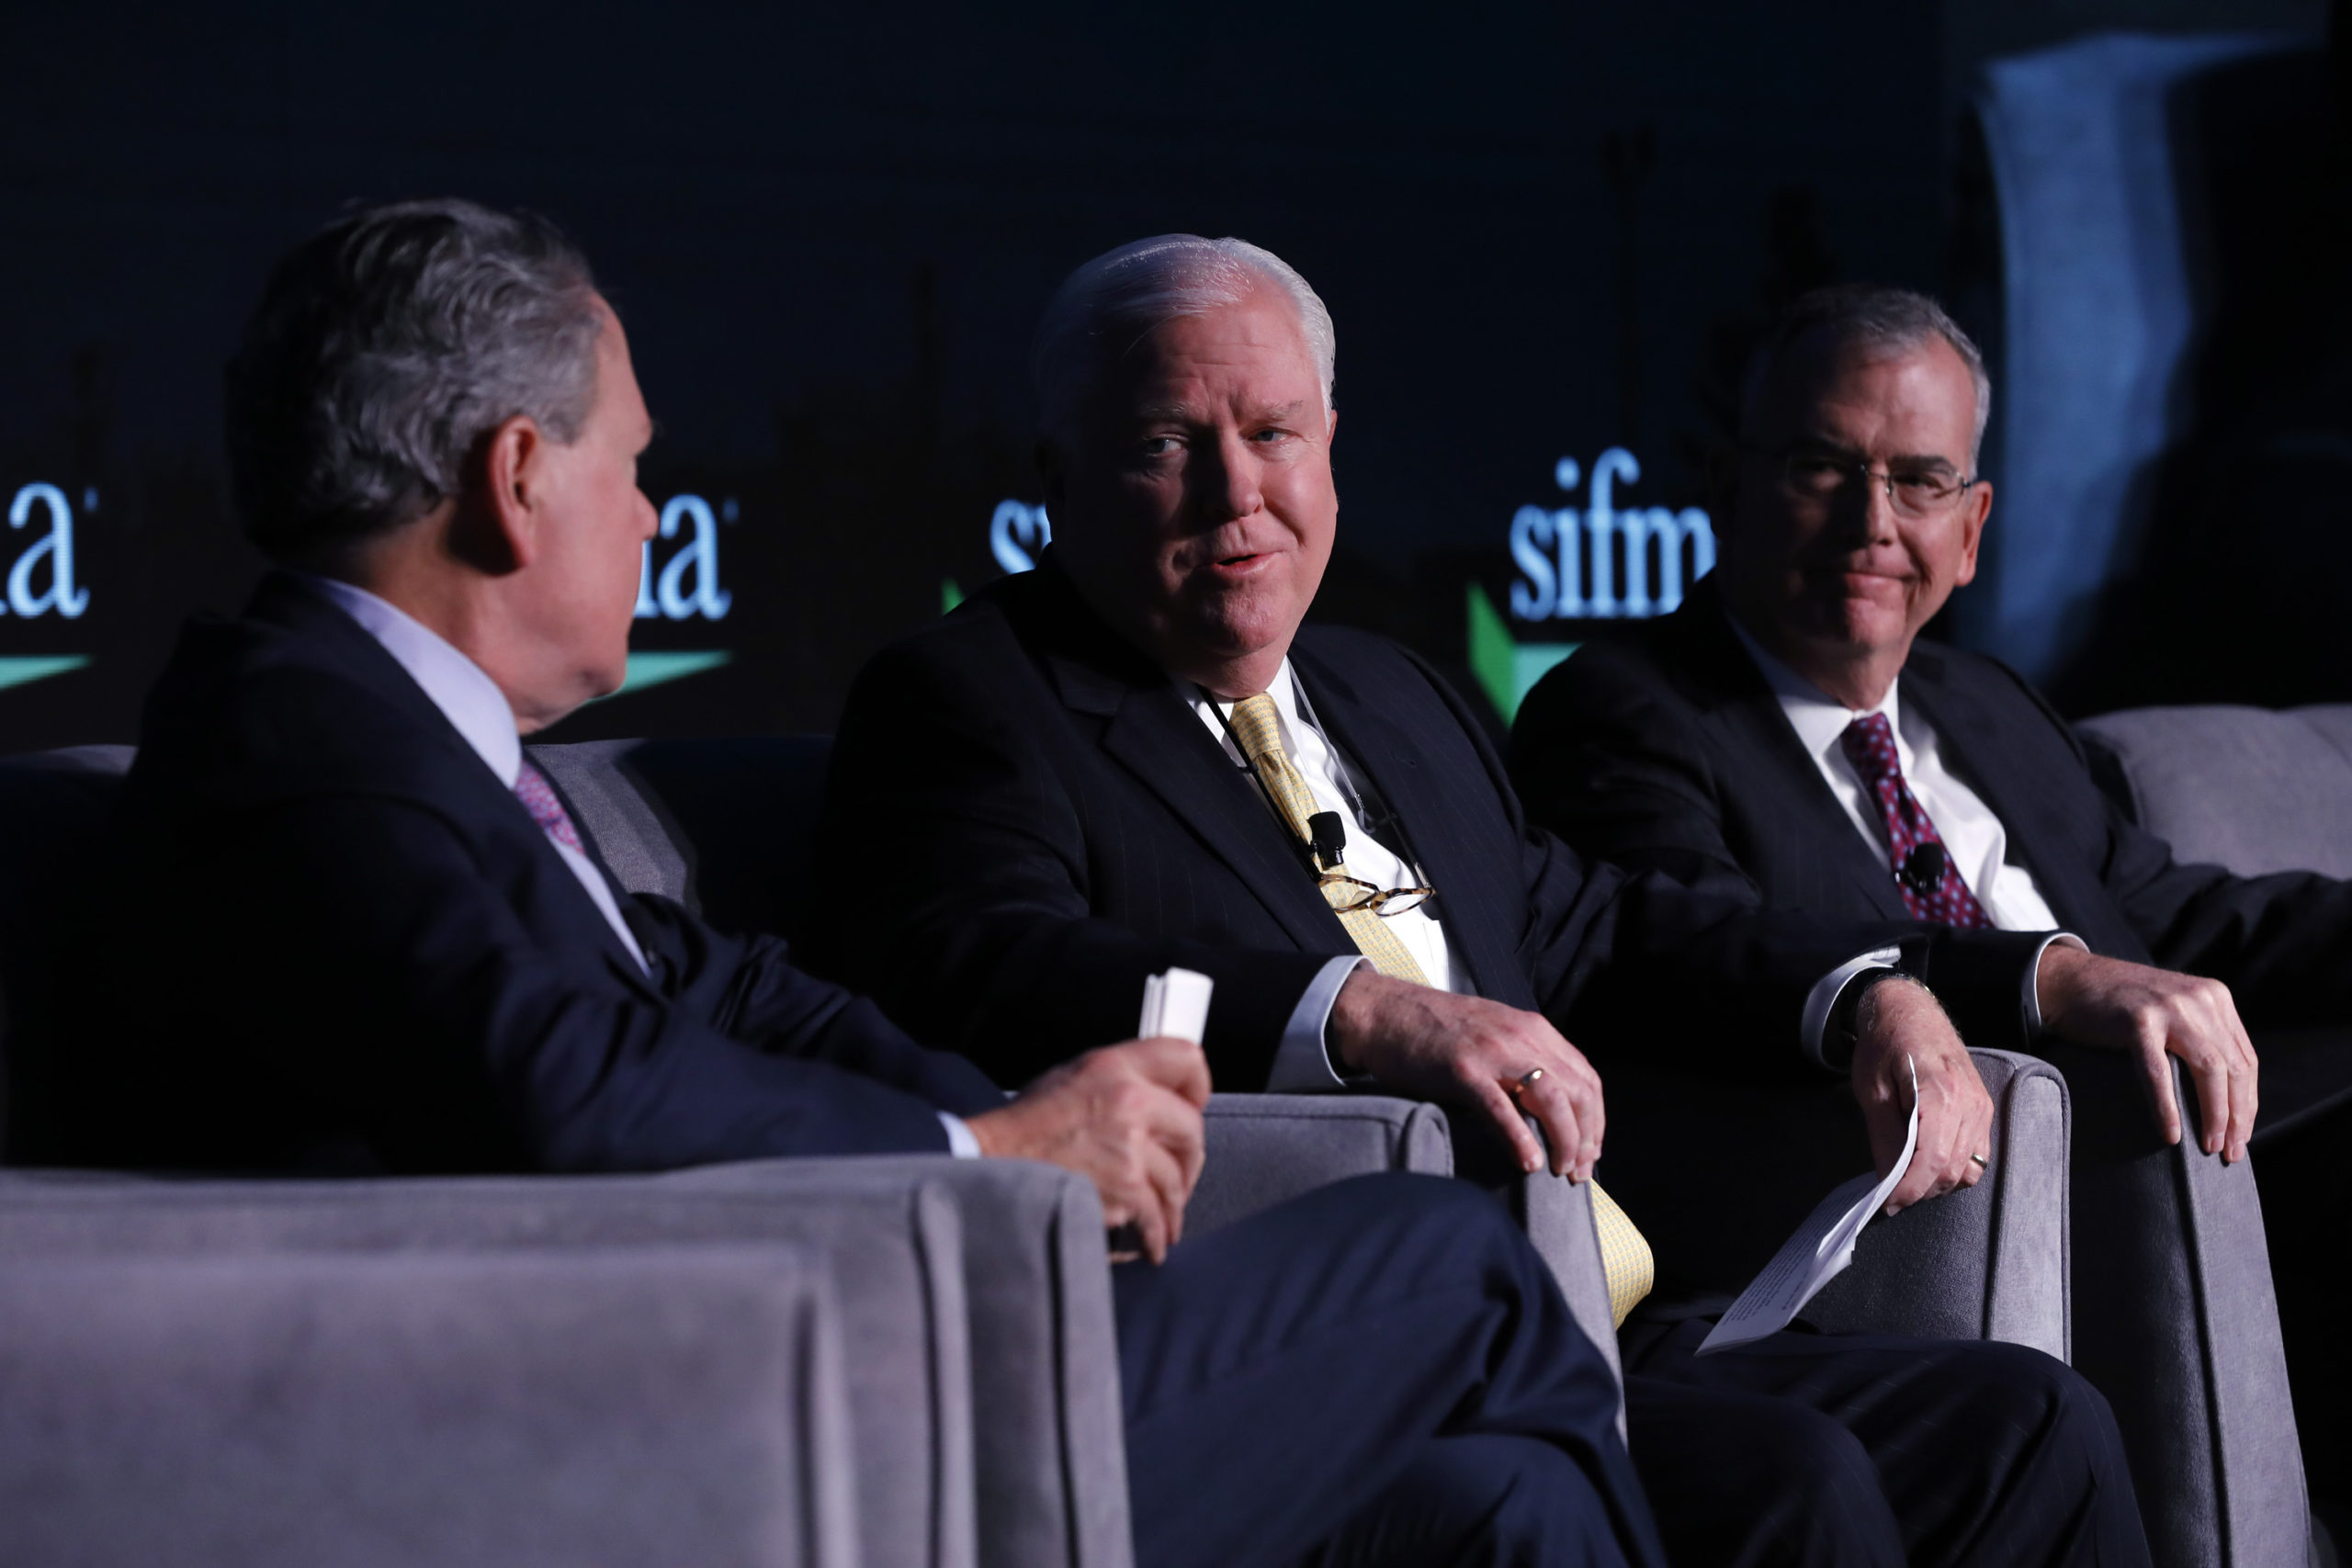 A fireside chat with the Chair and Chair-Elect of SIFMAÕs Board of Directors: Kenneth Bentsen, Jr., James Allen and Joseph Sweeney during SIFMA Annual Meeting, the Capital Markets Conference, in Washington on November 19, 2019.